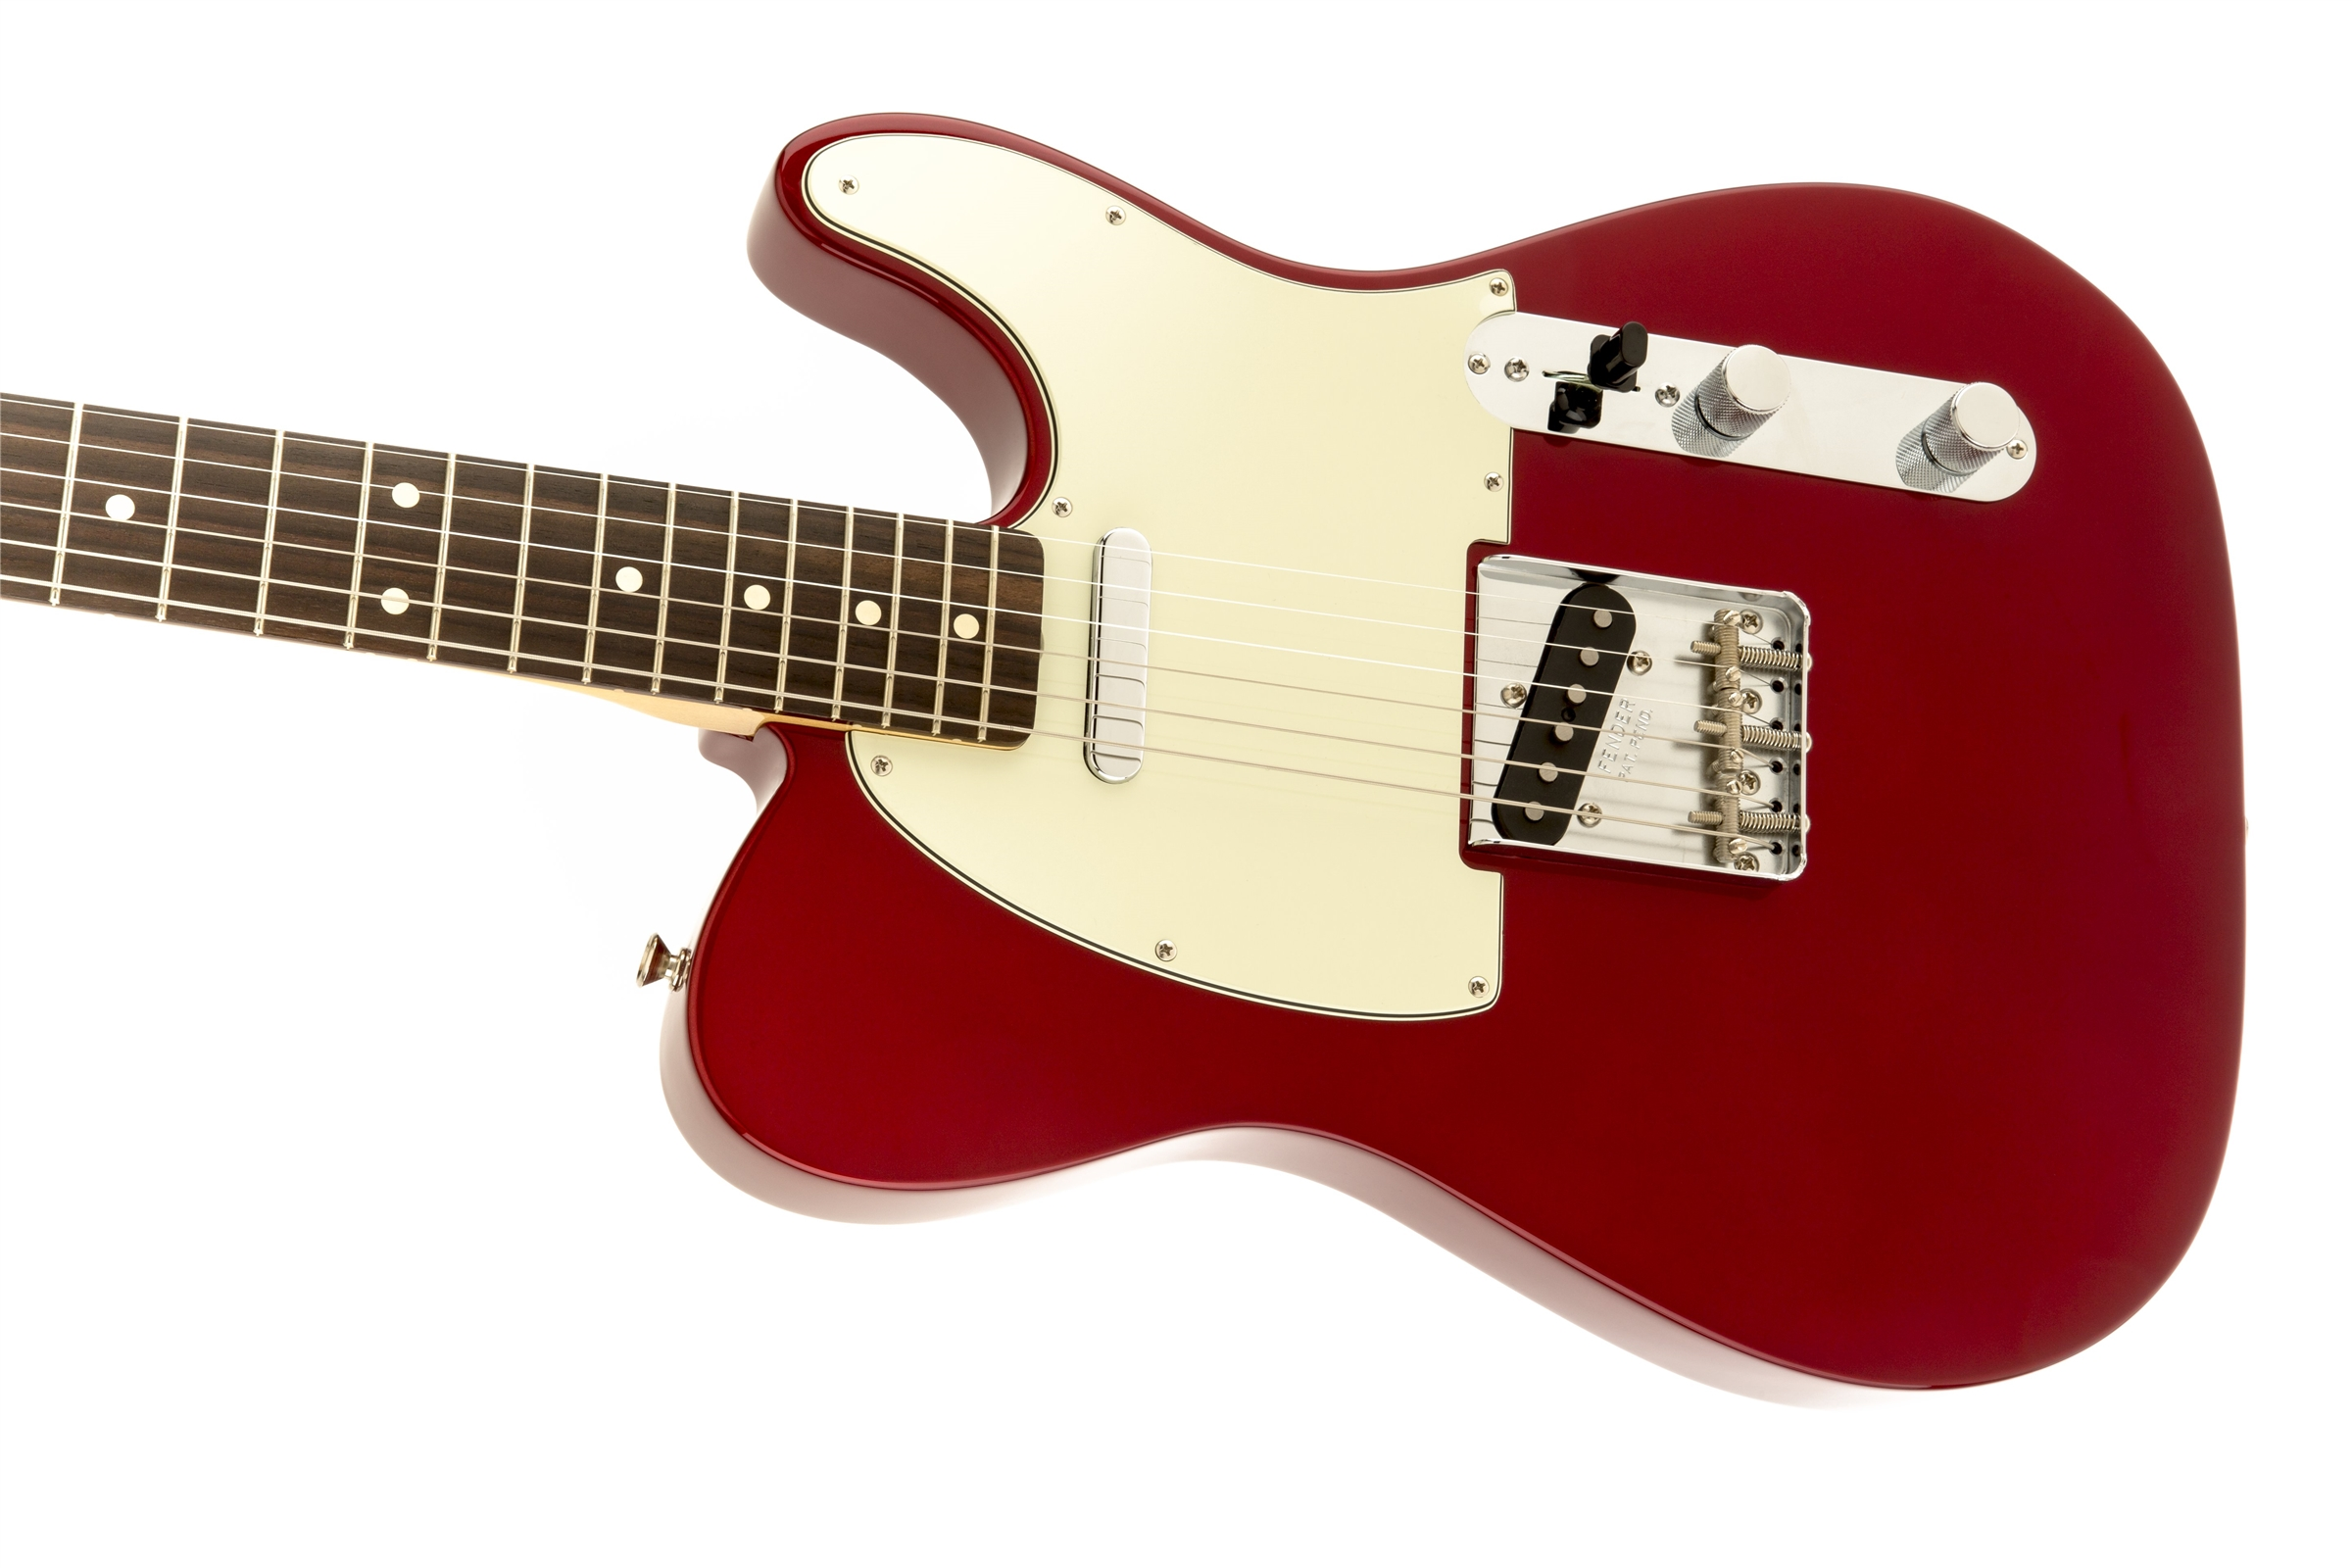 Fender Classic Series '60s Telecaster® Candy Apple Red Rosewood Fingerboard Electric Guitar